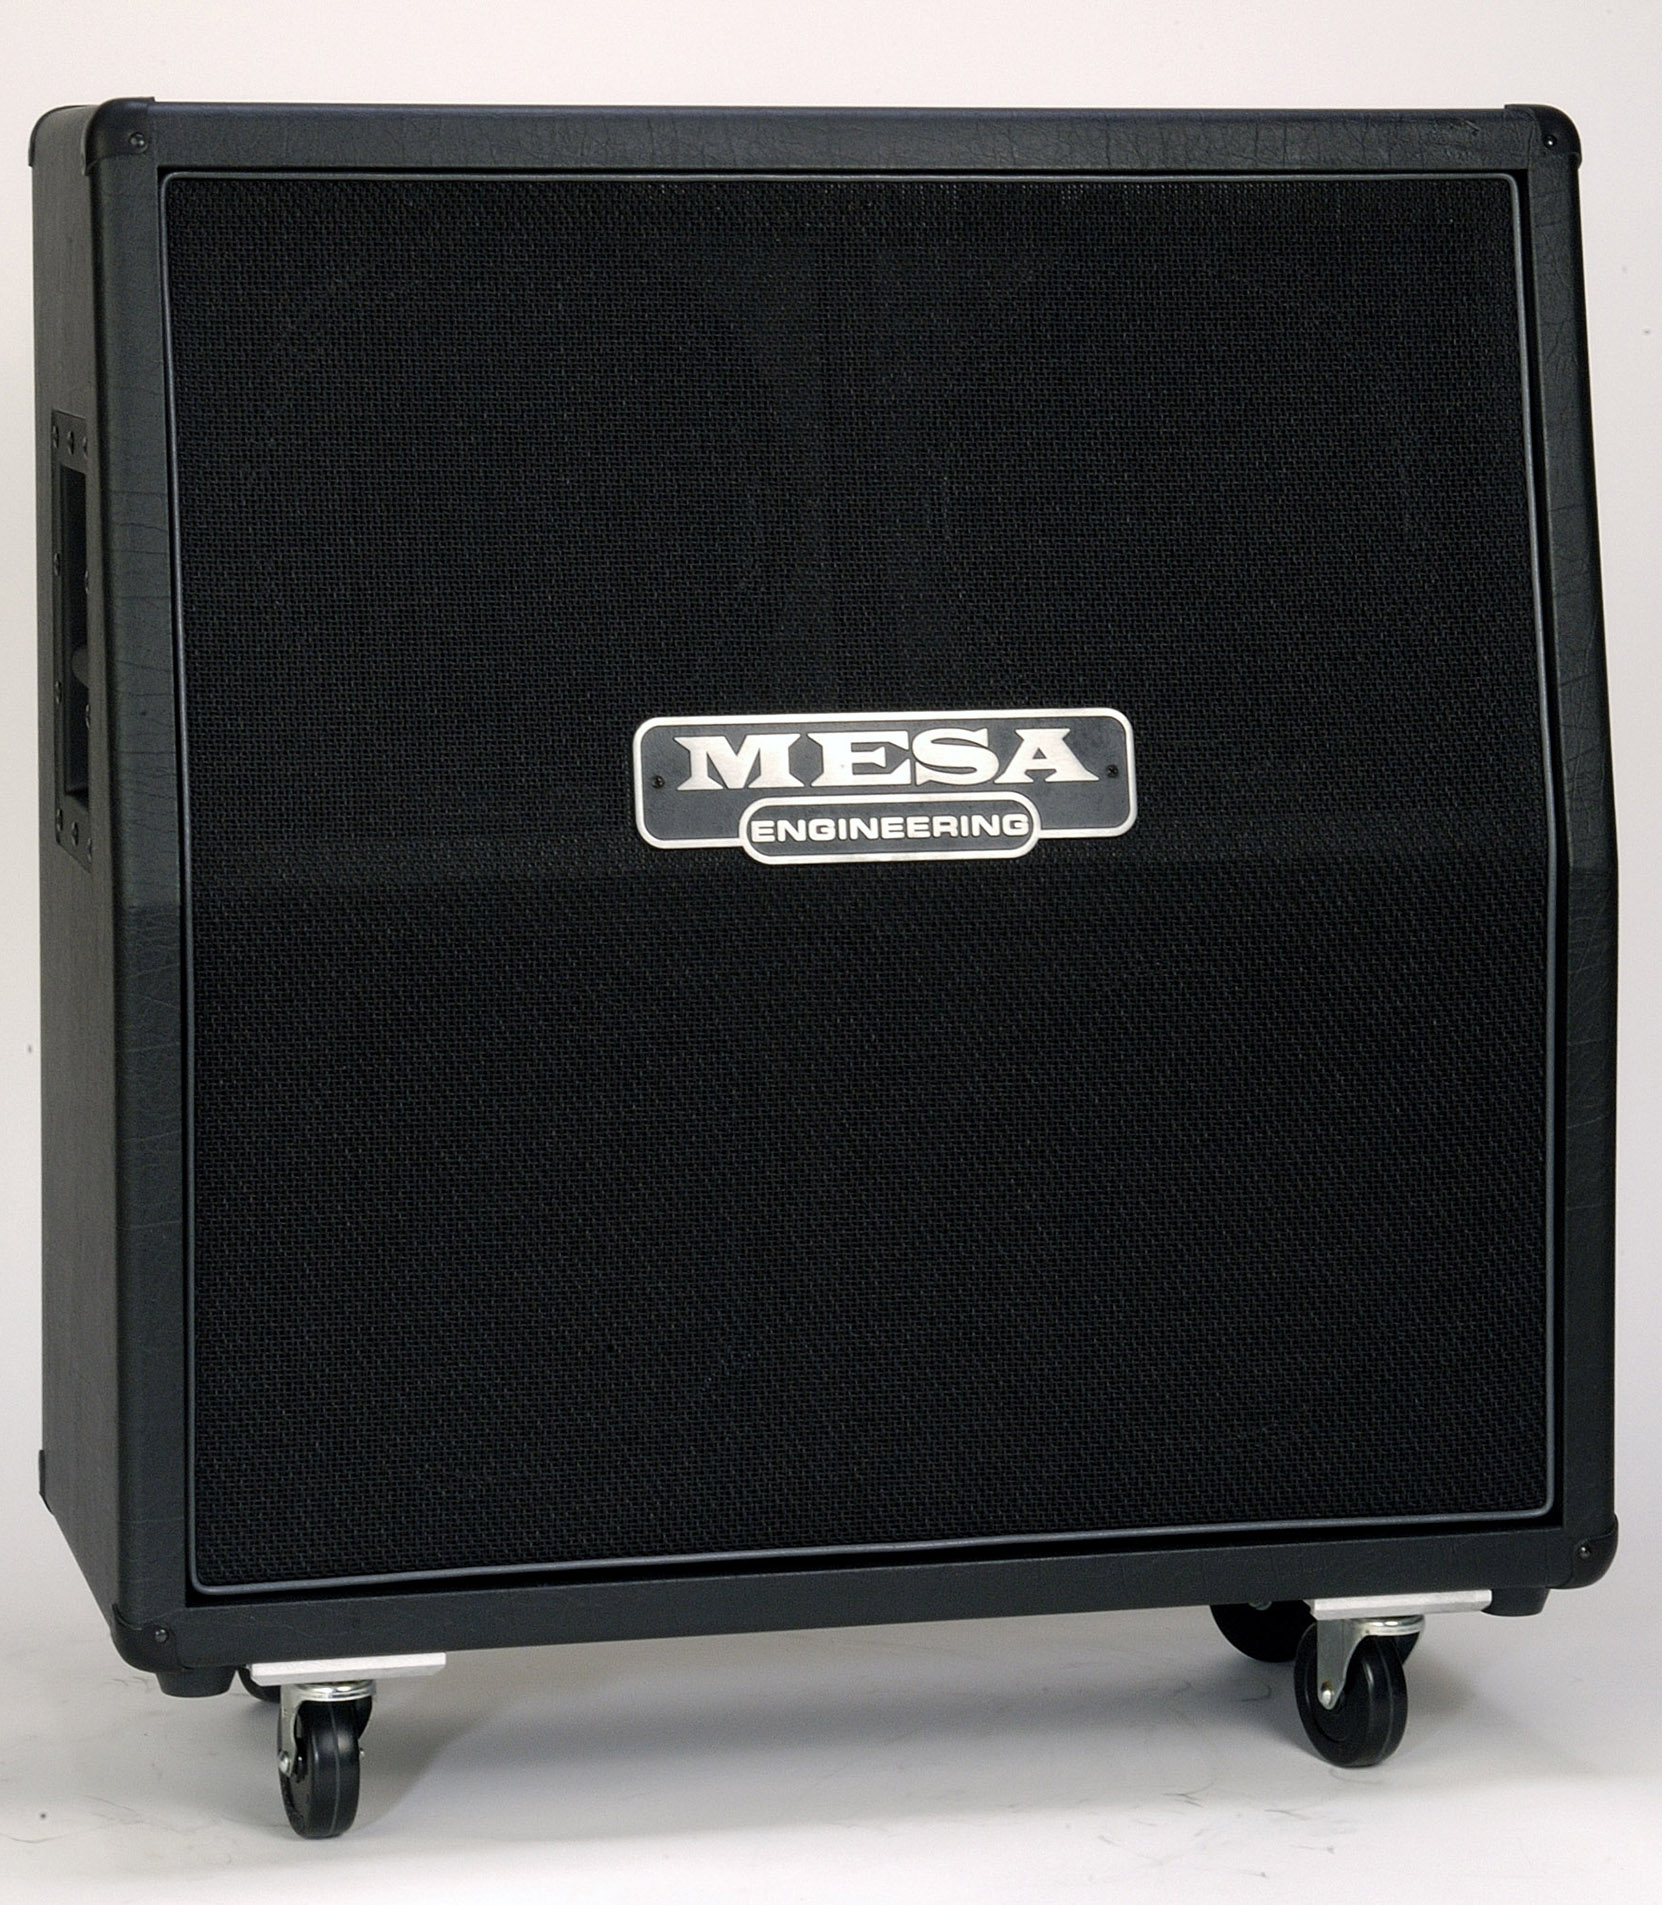 Melody House Musical Instruments Store - 4x12 RectoTraditional Slant Cabinet